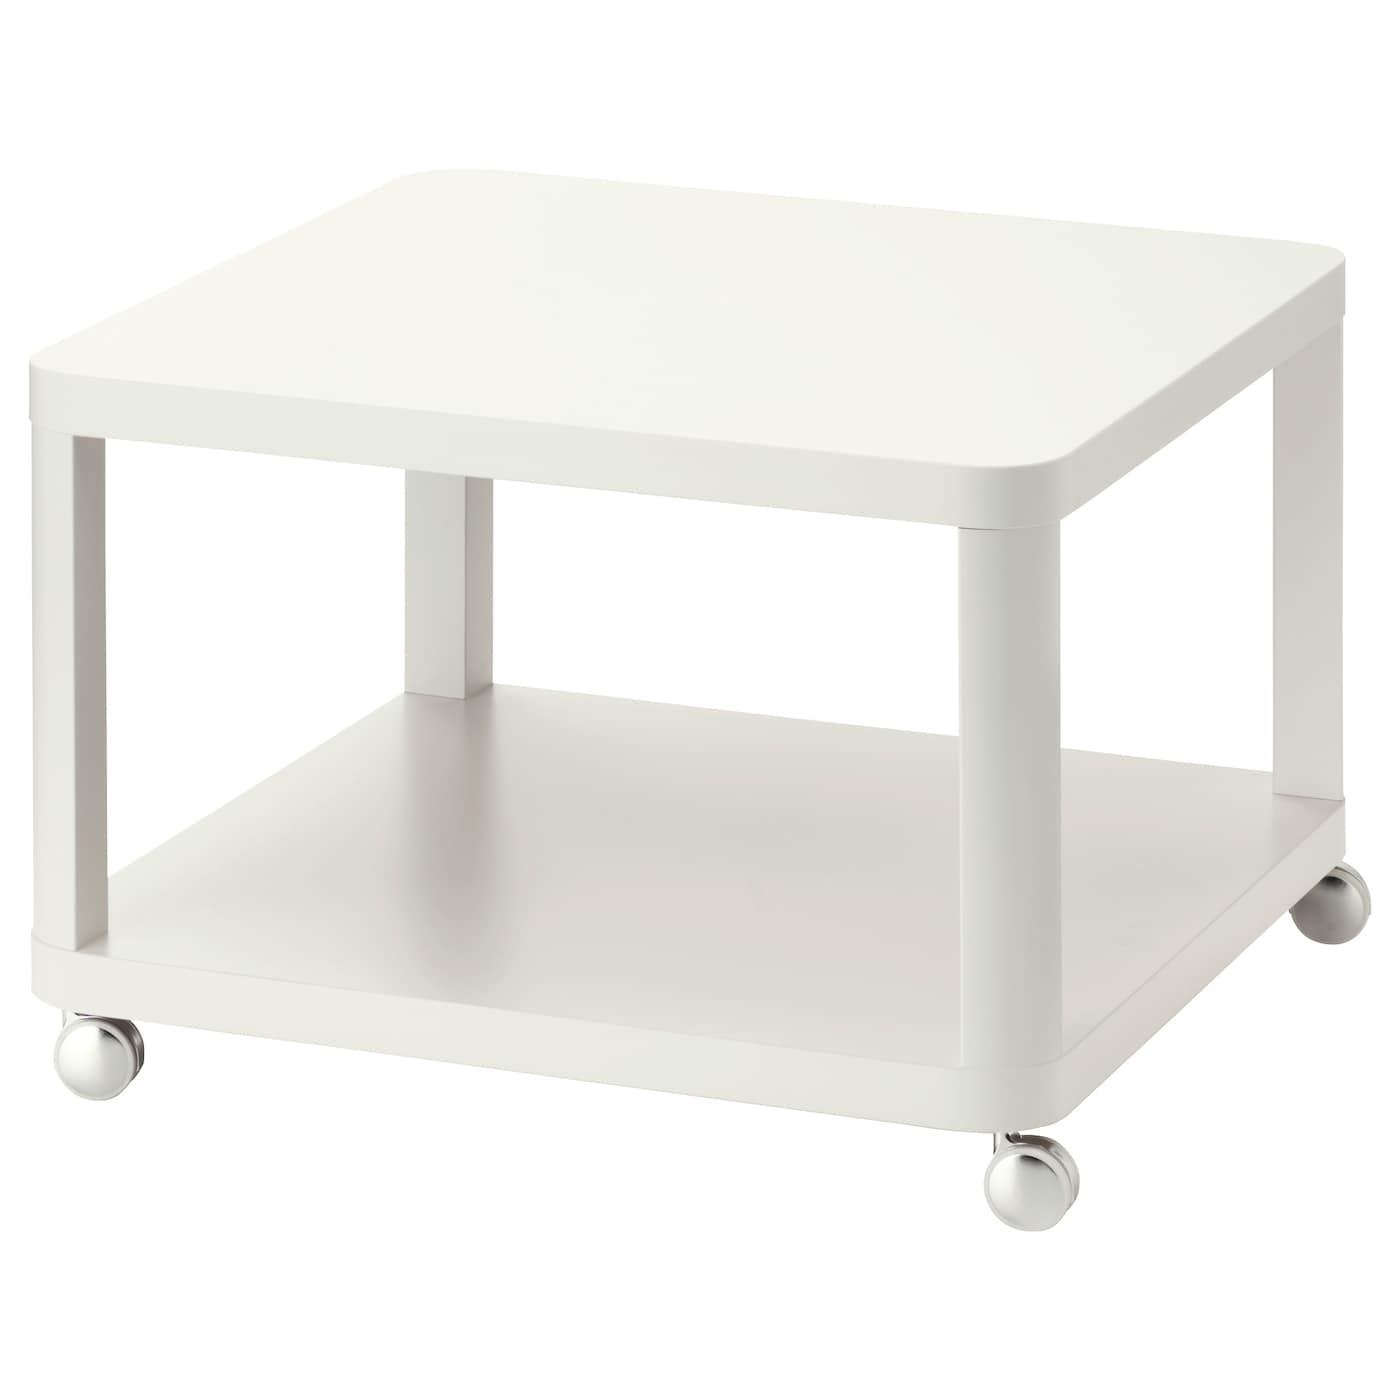 White side table - Ikea Tingby Side Table On Castors The Castors Make It Easy To Move The Table If